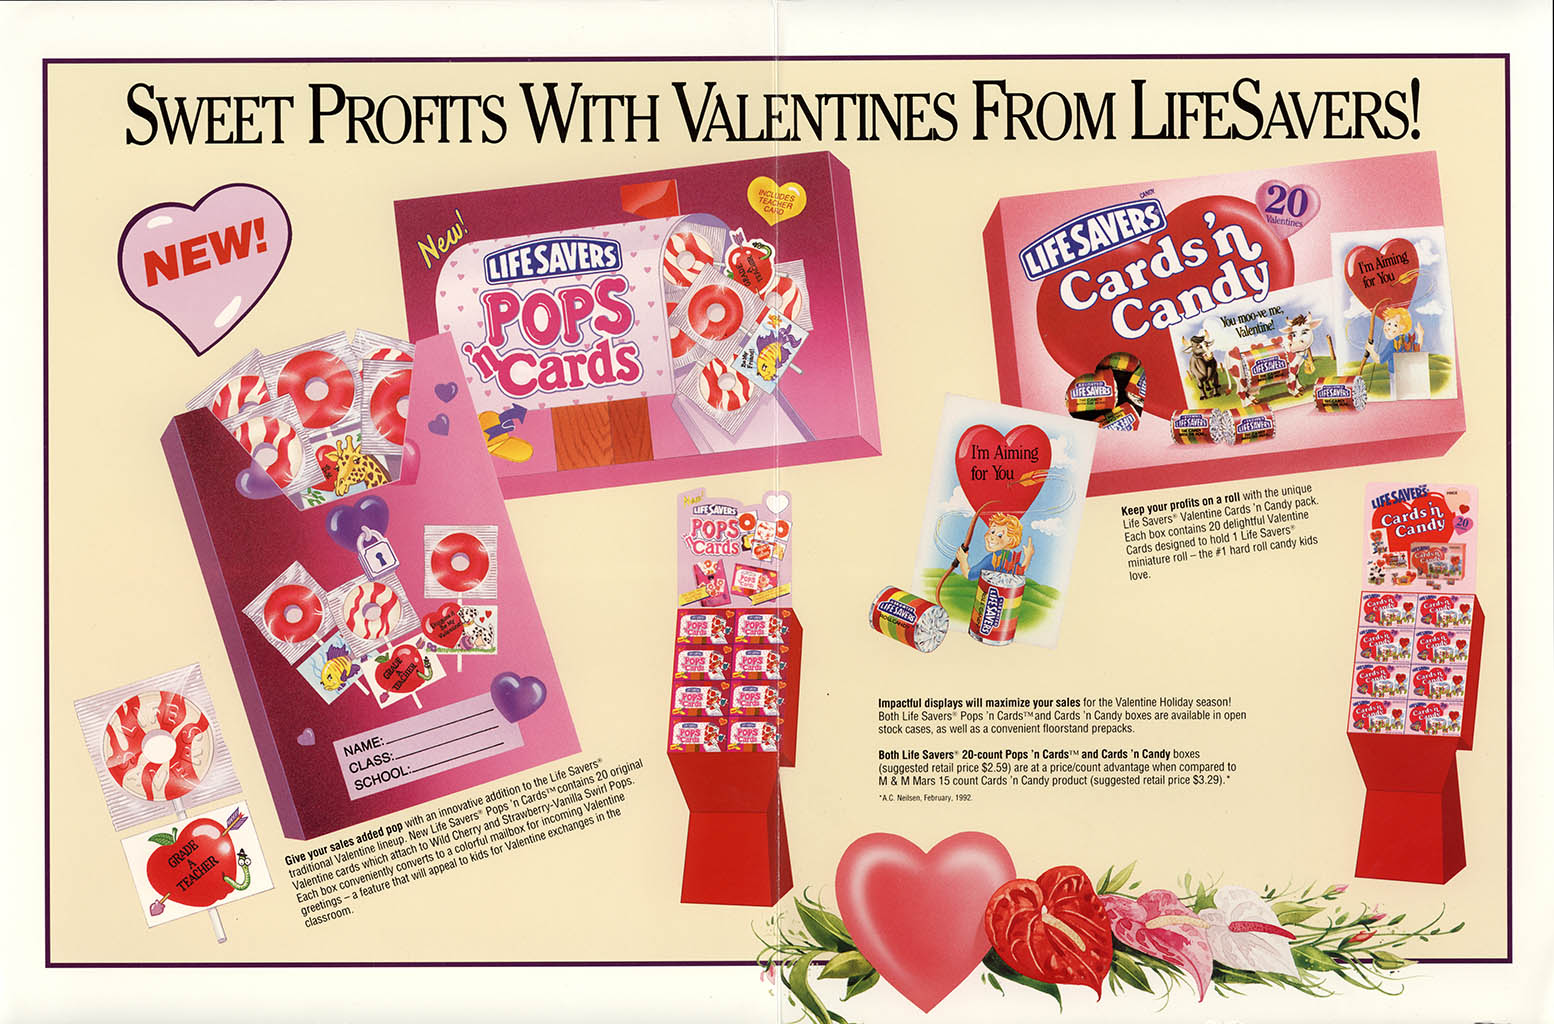 Nabisco Foods - Lifesavers - Valentines Treats 1994 - brochure - center spread